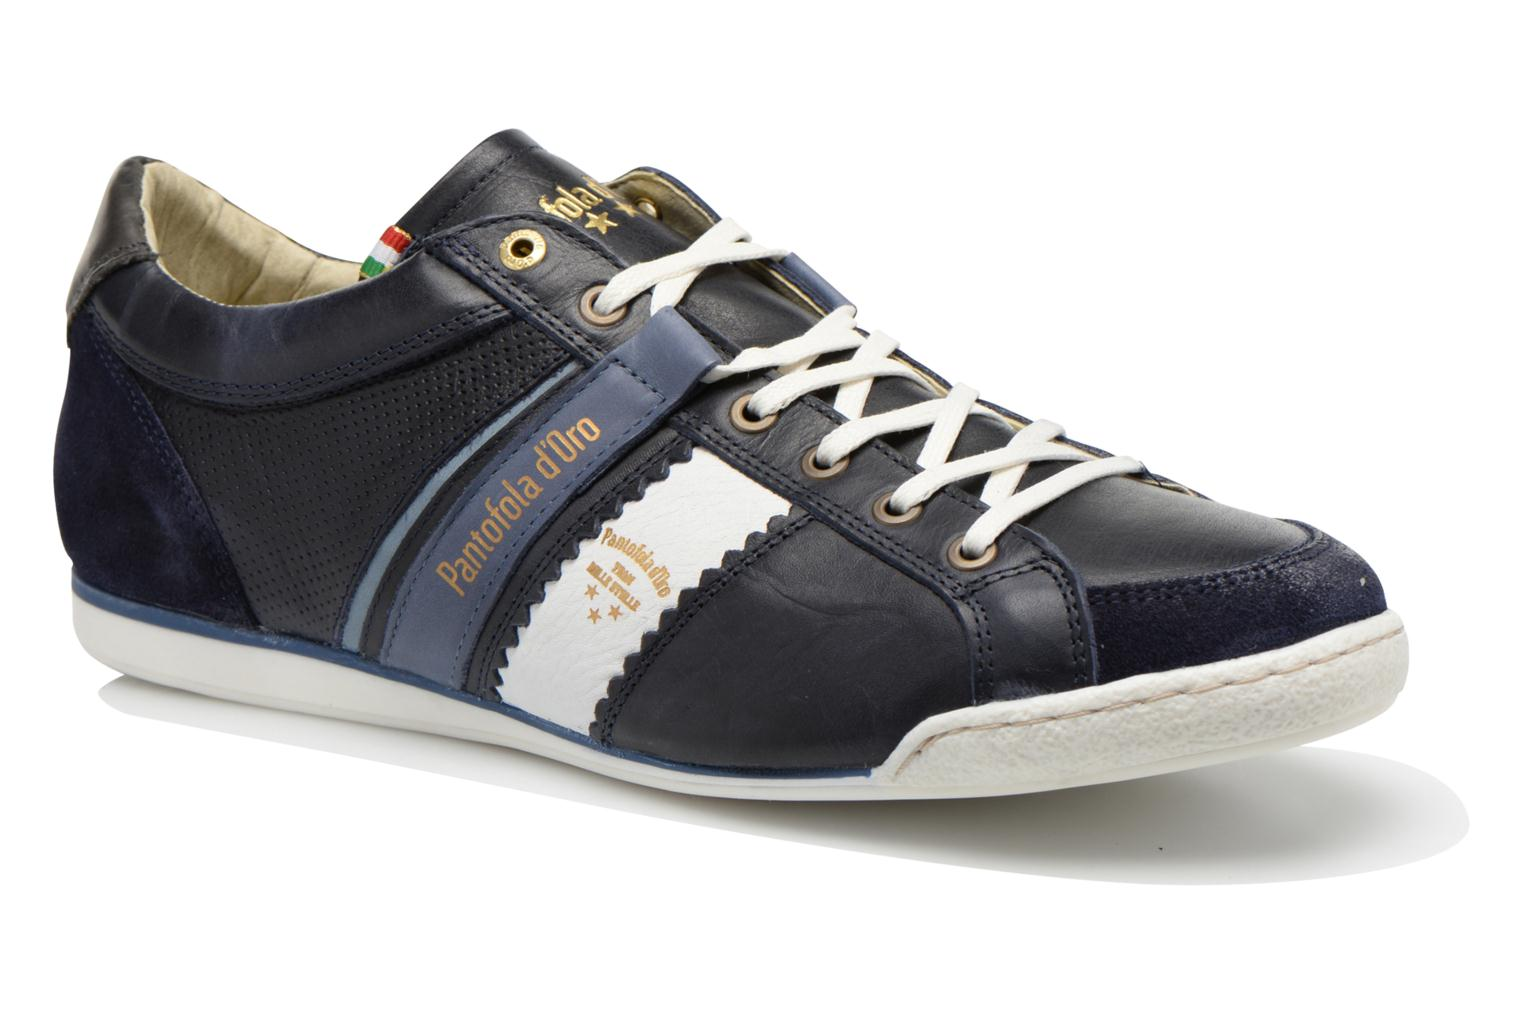 Sneakers Pesaro piceno low by Pantofola d'Oro